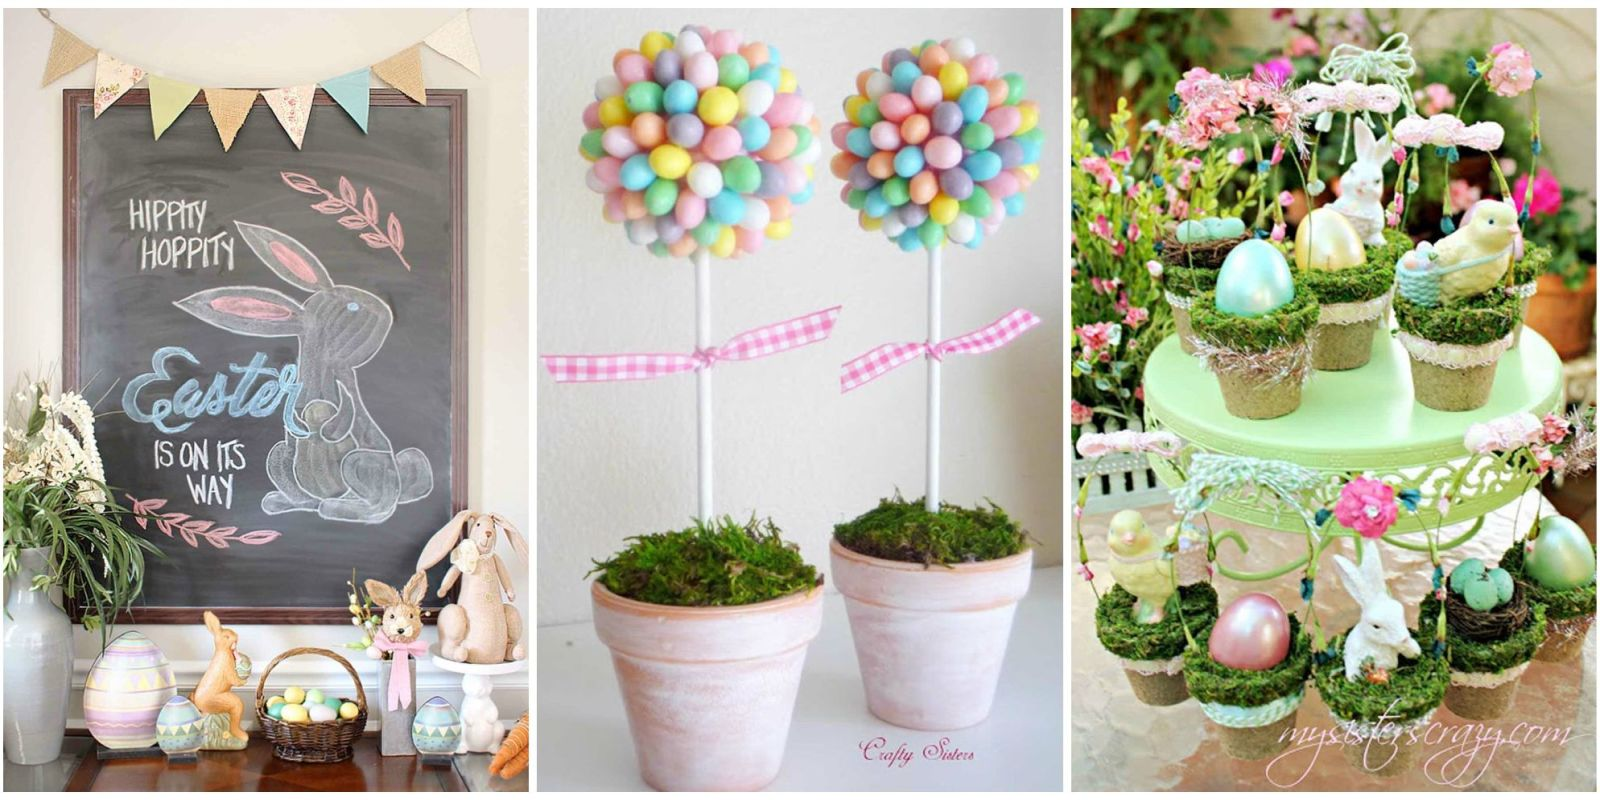 20 diy easter decorations to make homemade easter for Easter decorations ideas for the home